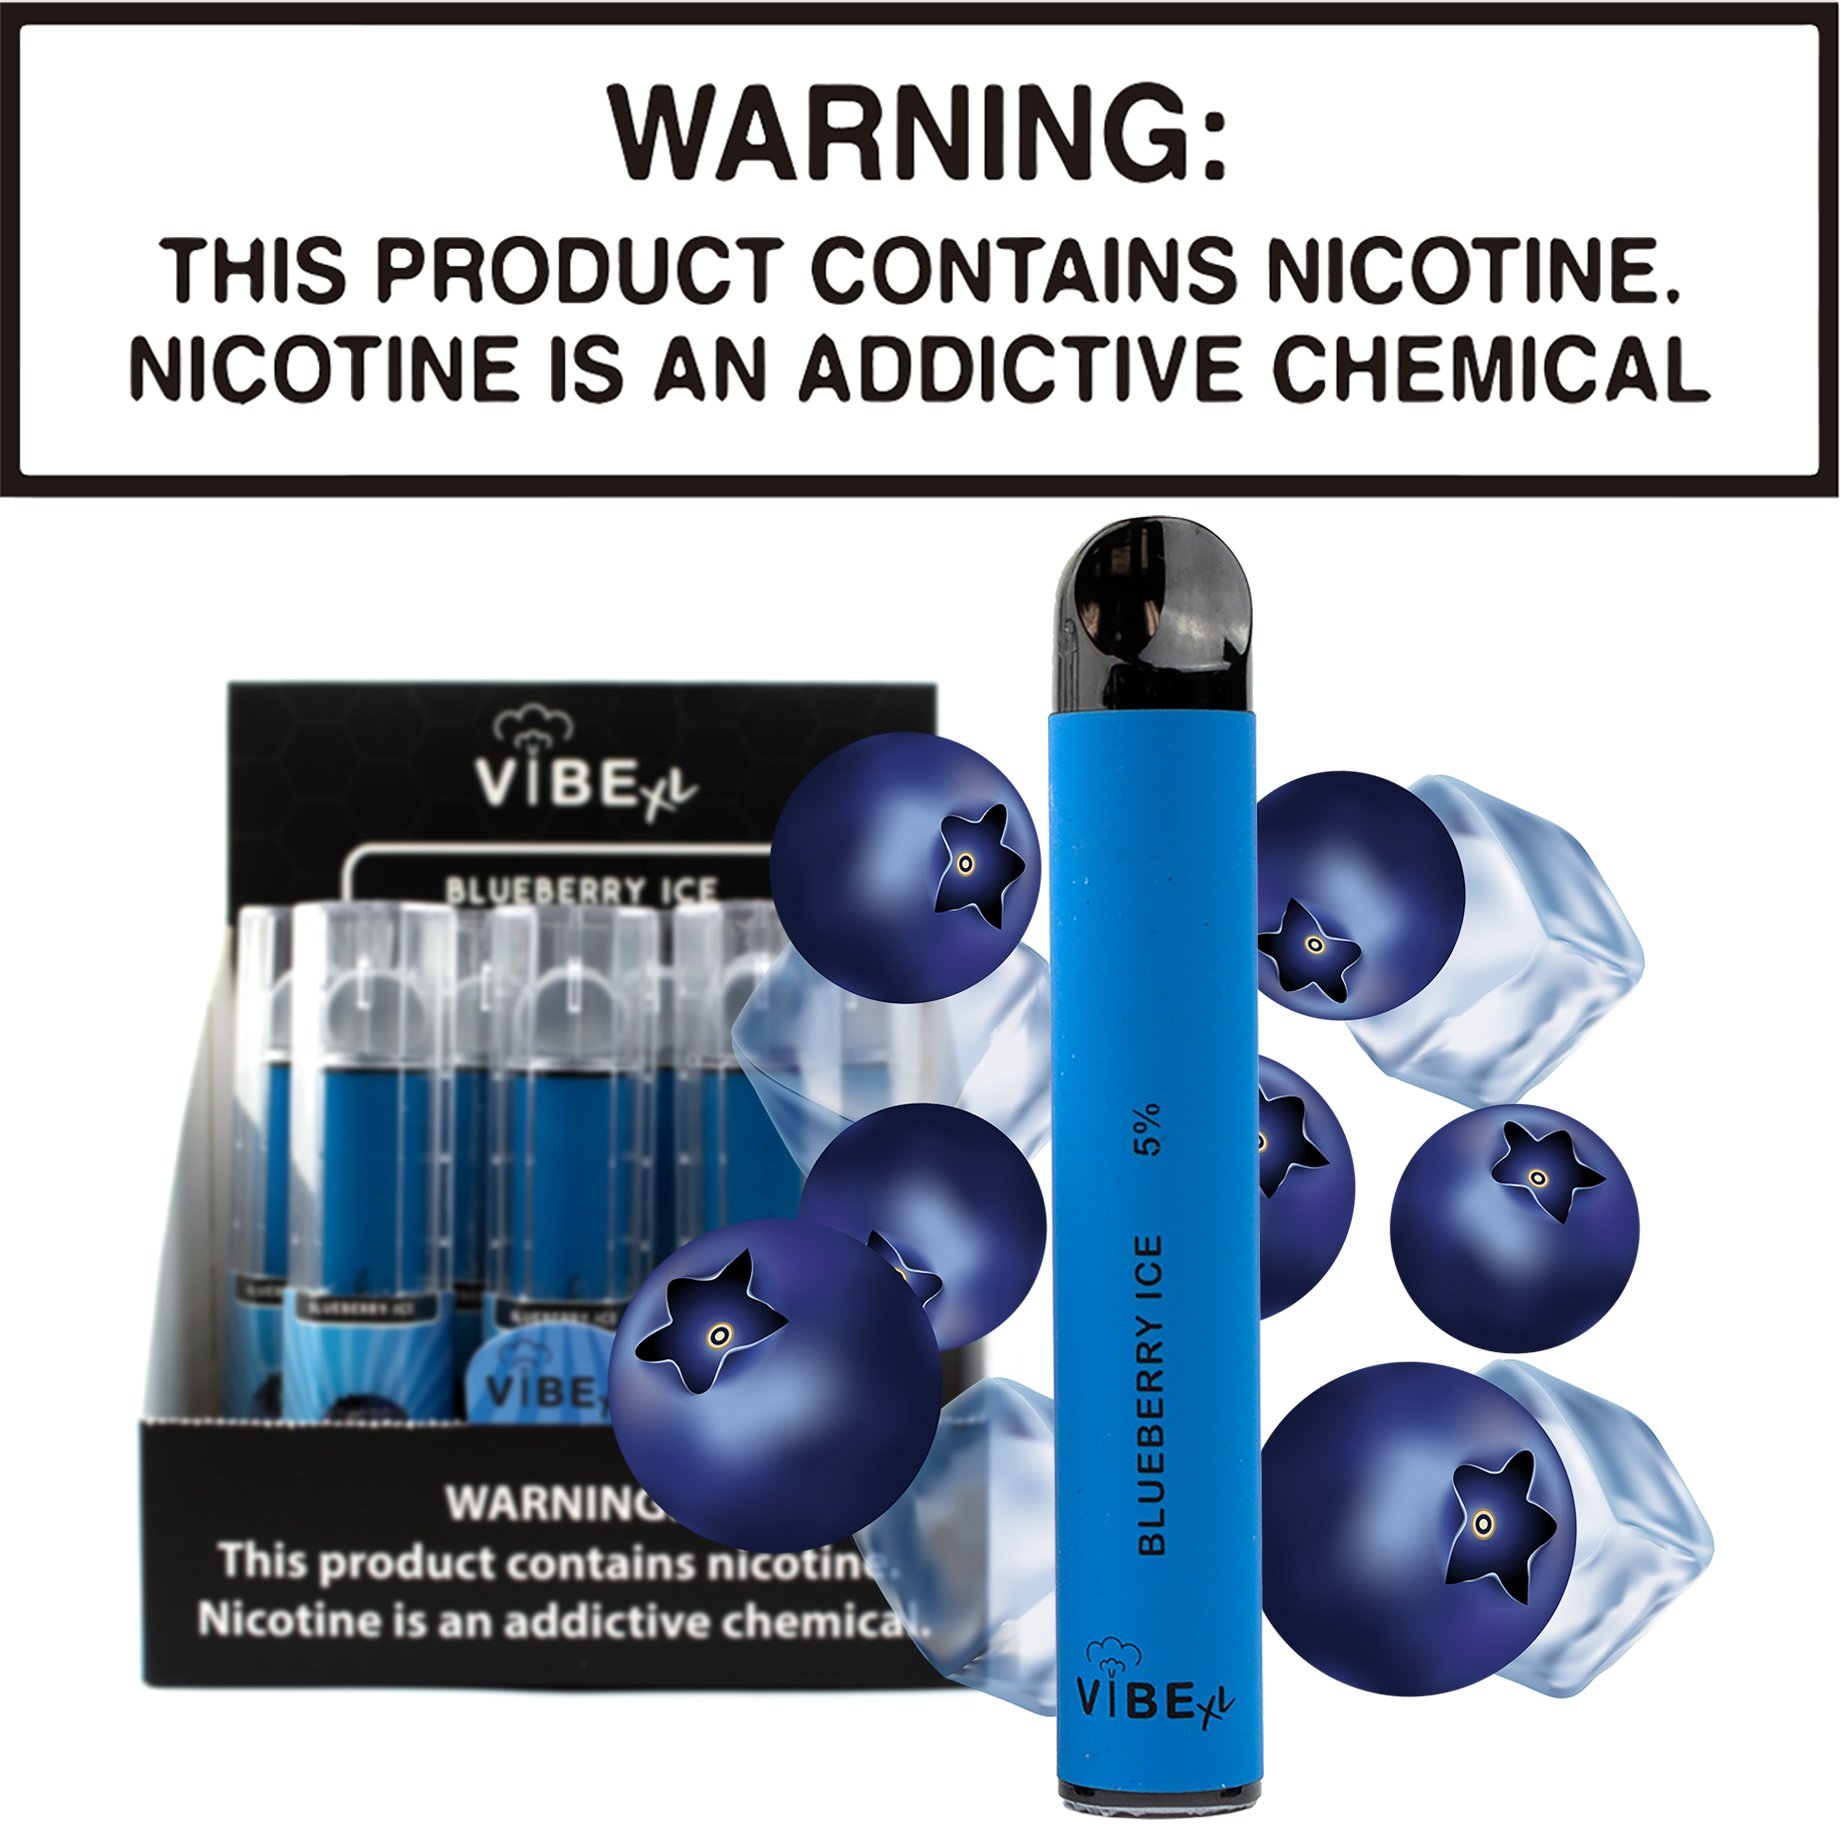 Vibe XL - Blueberry Ice (Disposable Device)